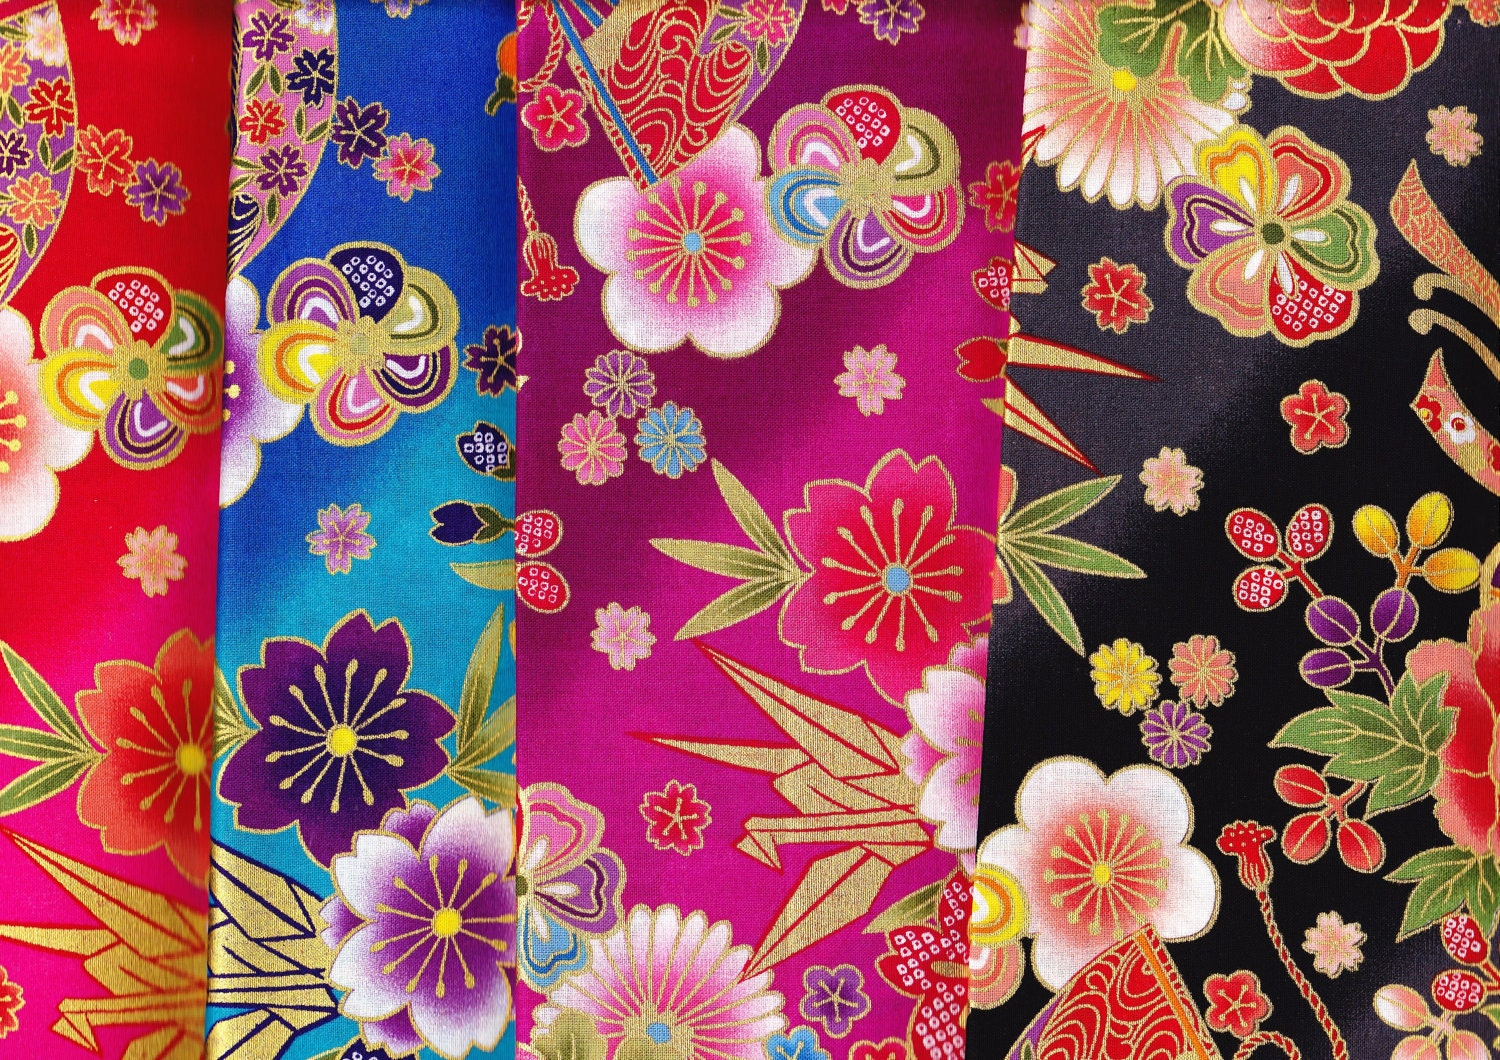 Japanese kimono cotton fabric 4 scraps flower butterfly etc